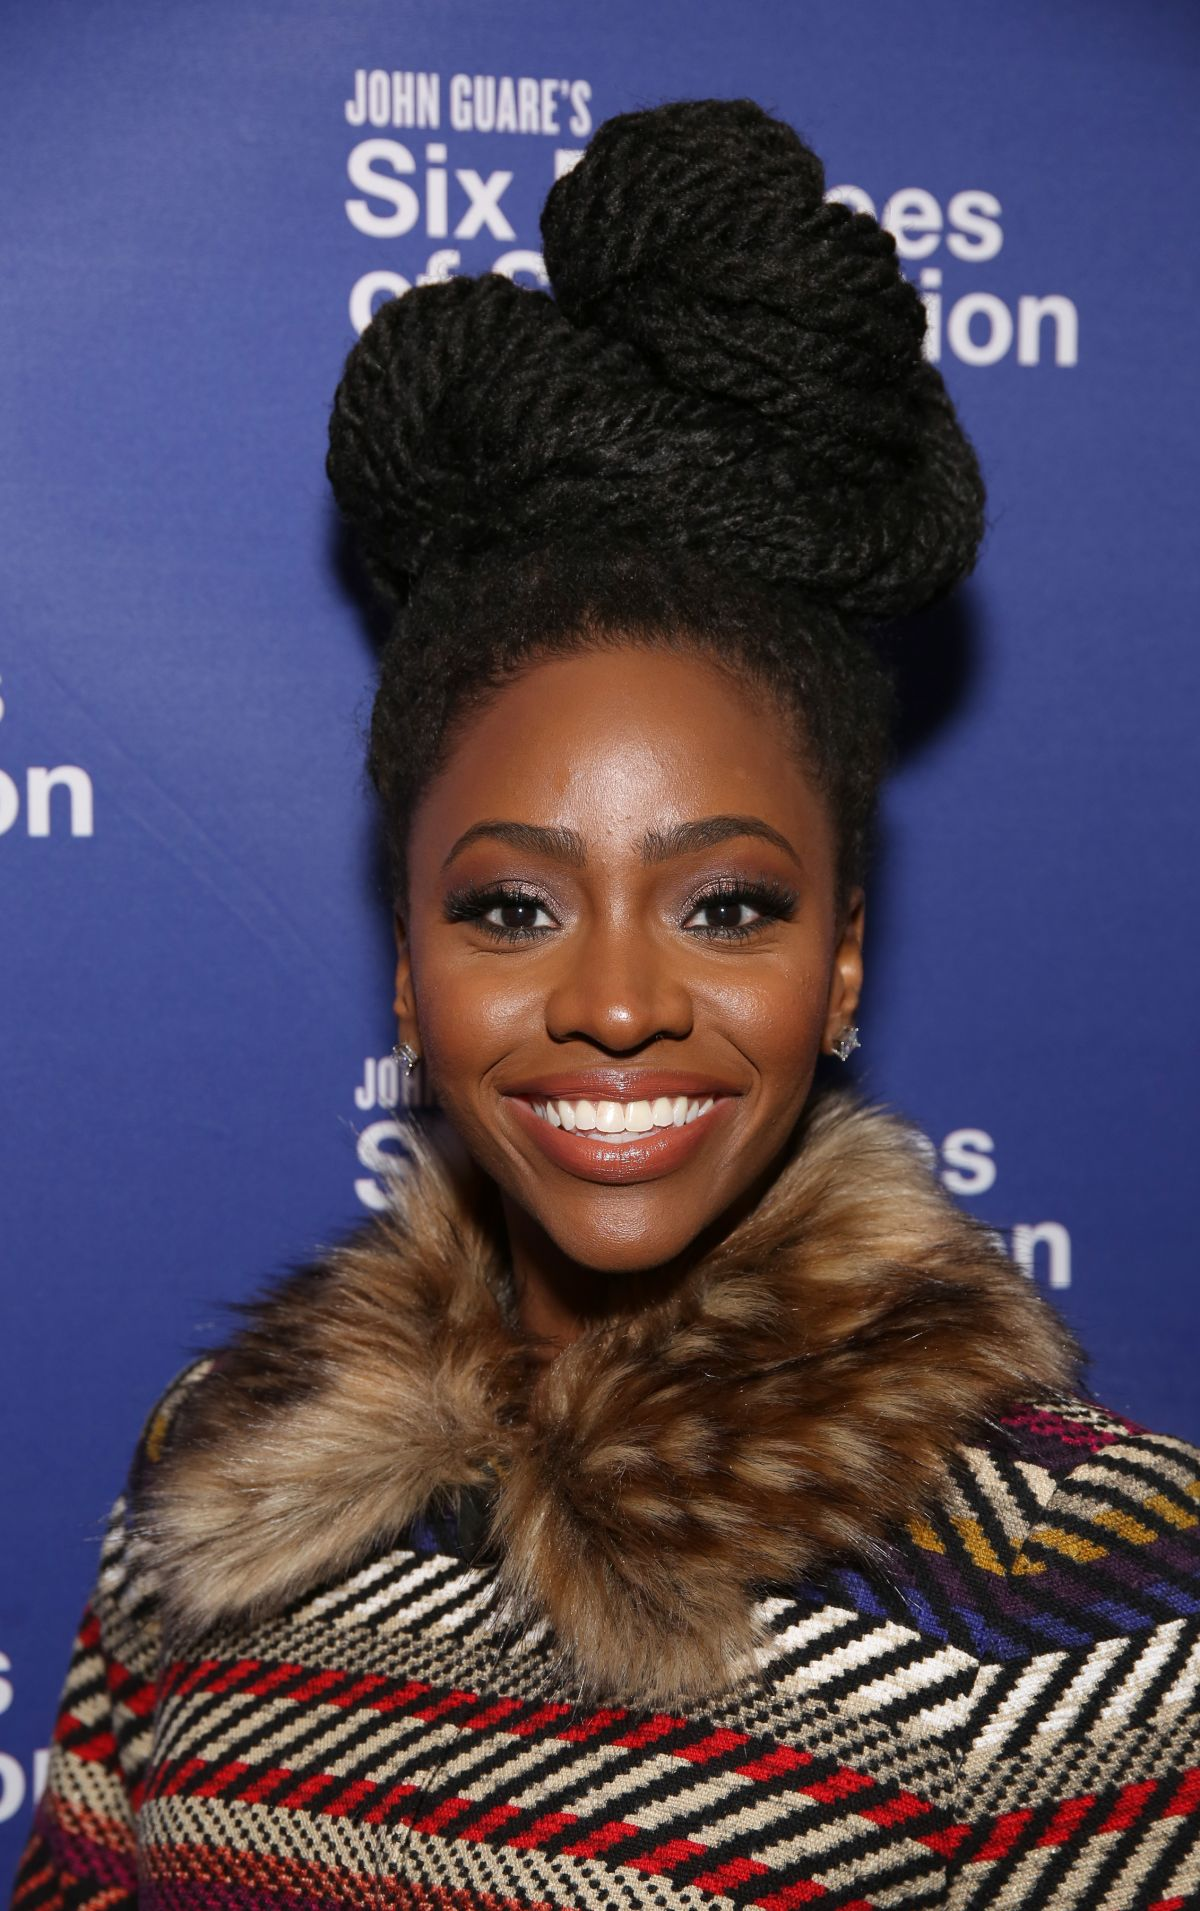 TEYONAH PARRIS at Six Degrees of Separation Opening Night in New York 04/25/2017